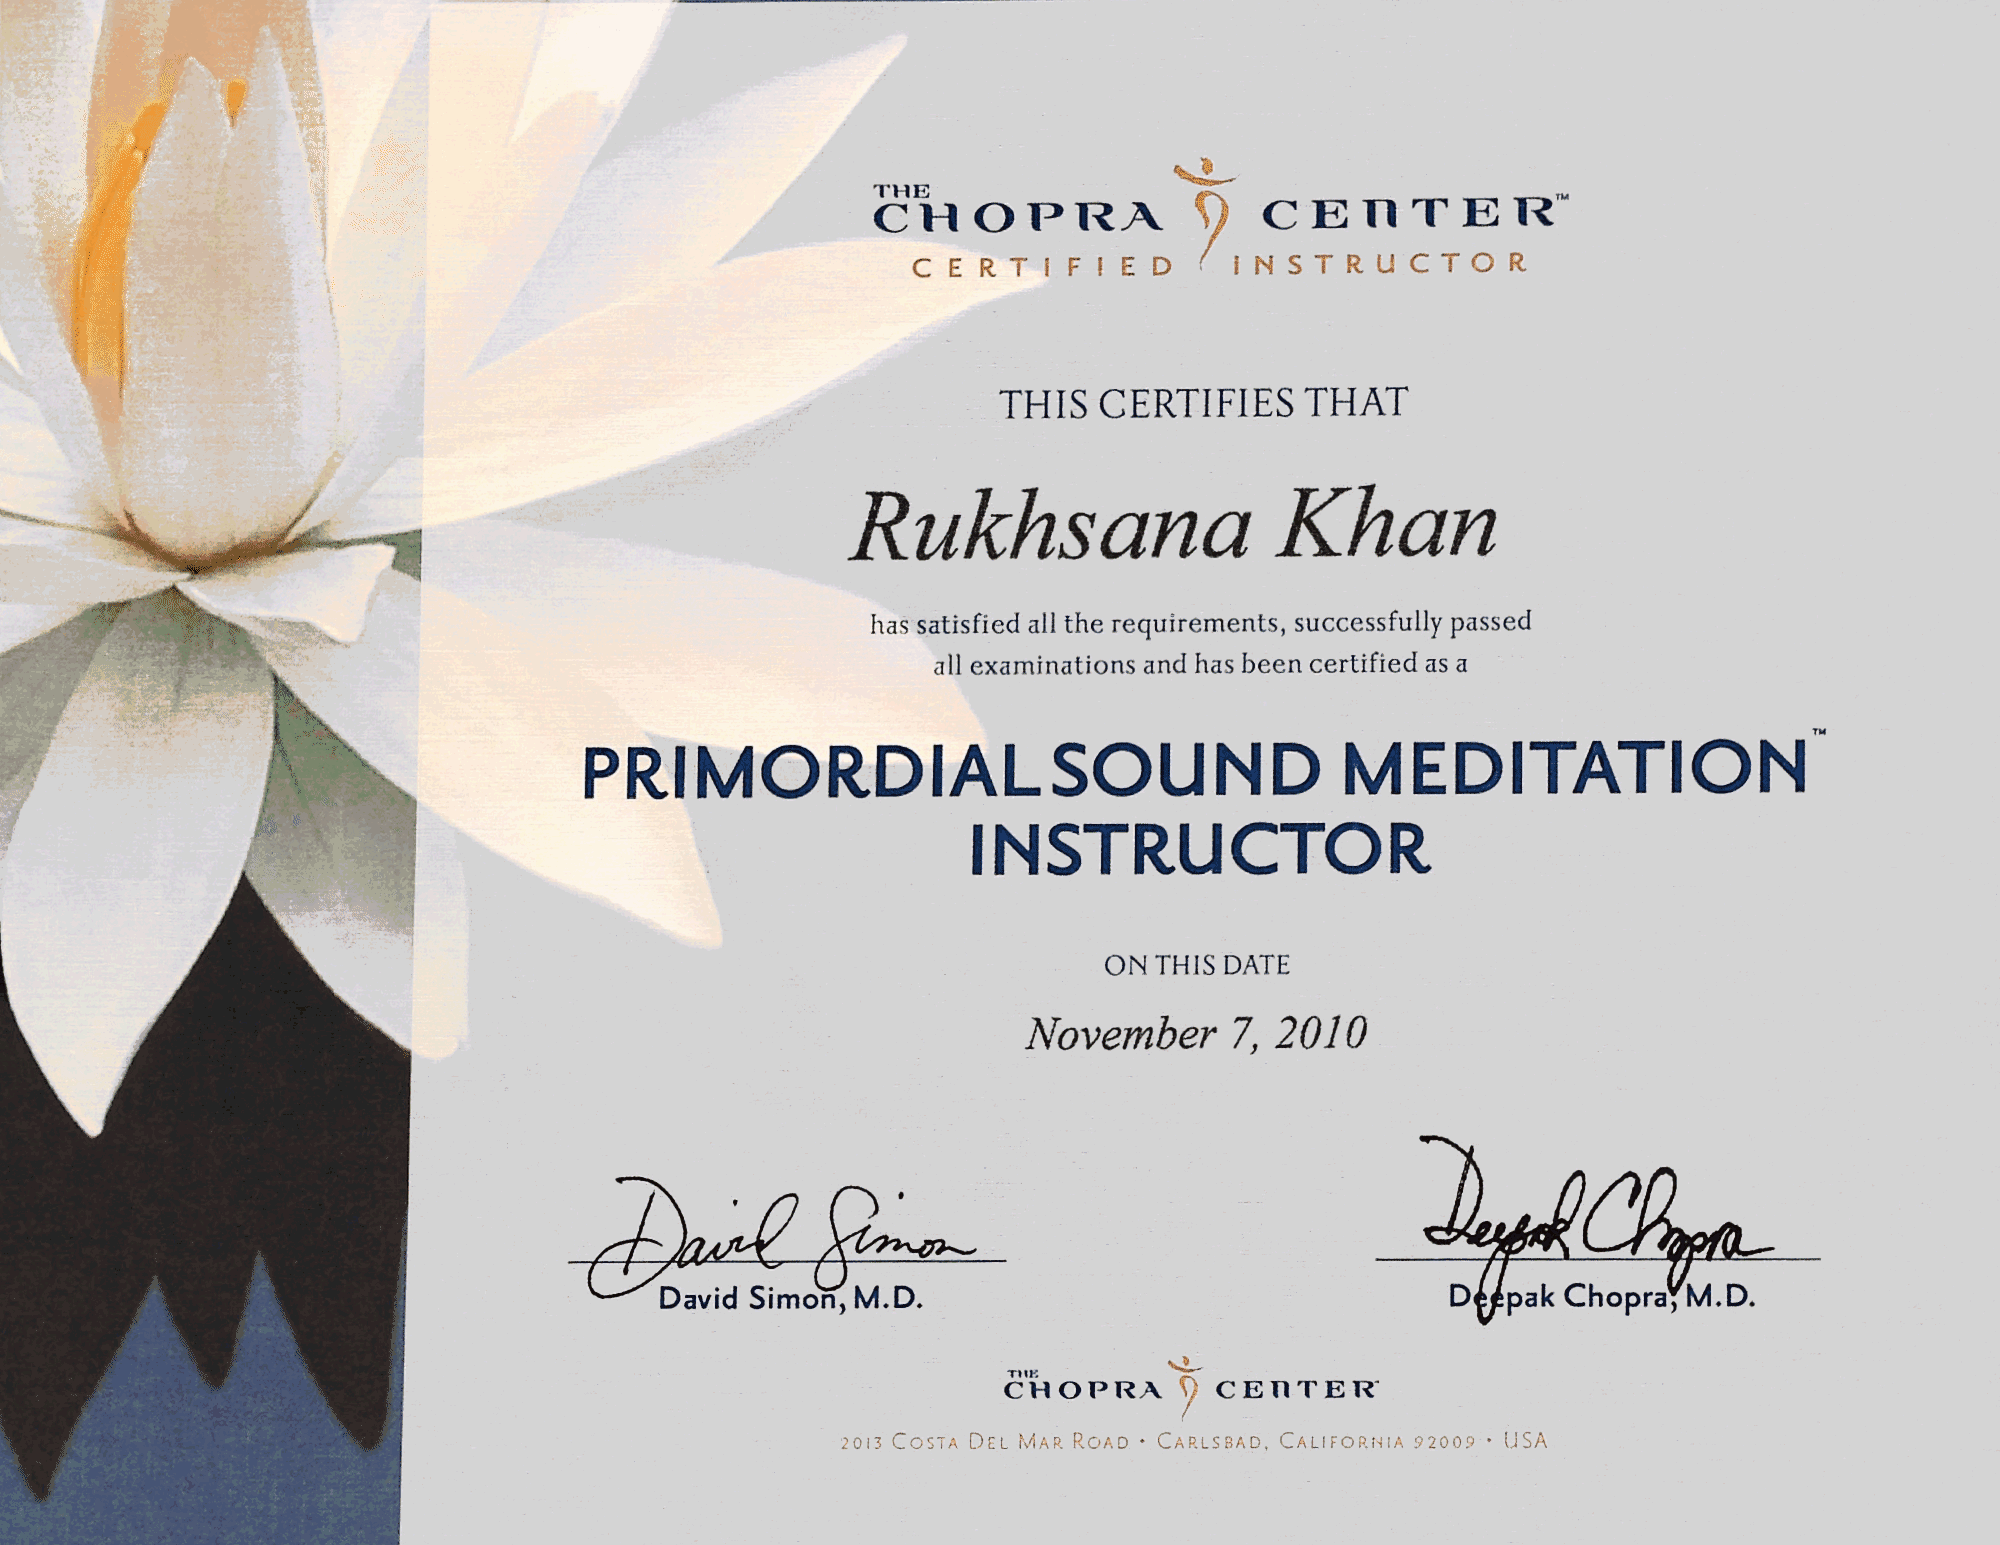 Primordial_Sound_Meditation_Instructor